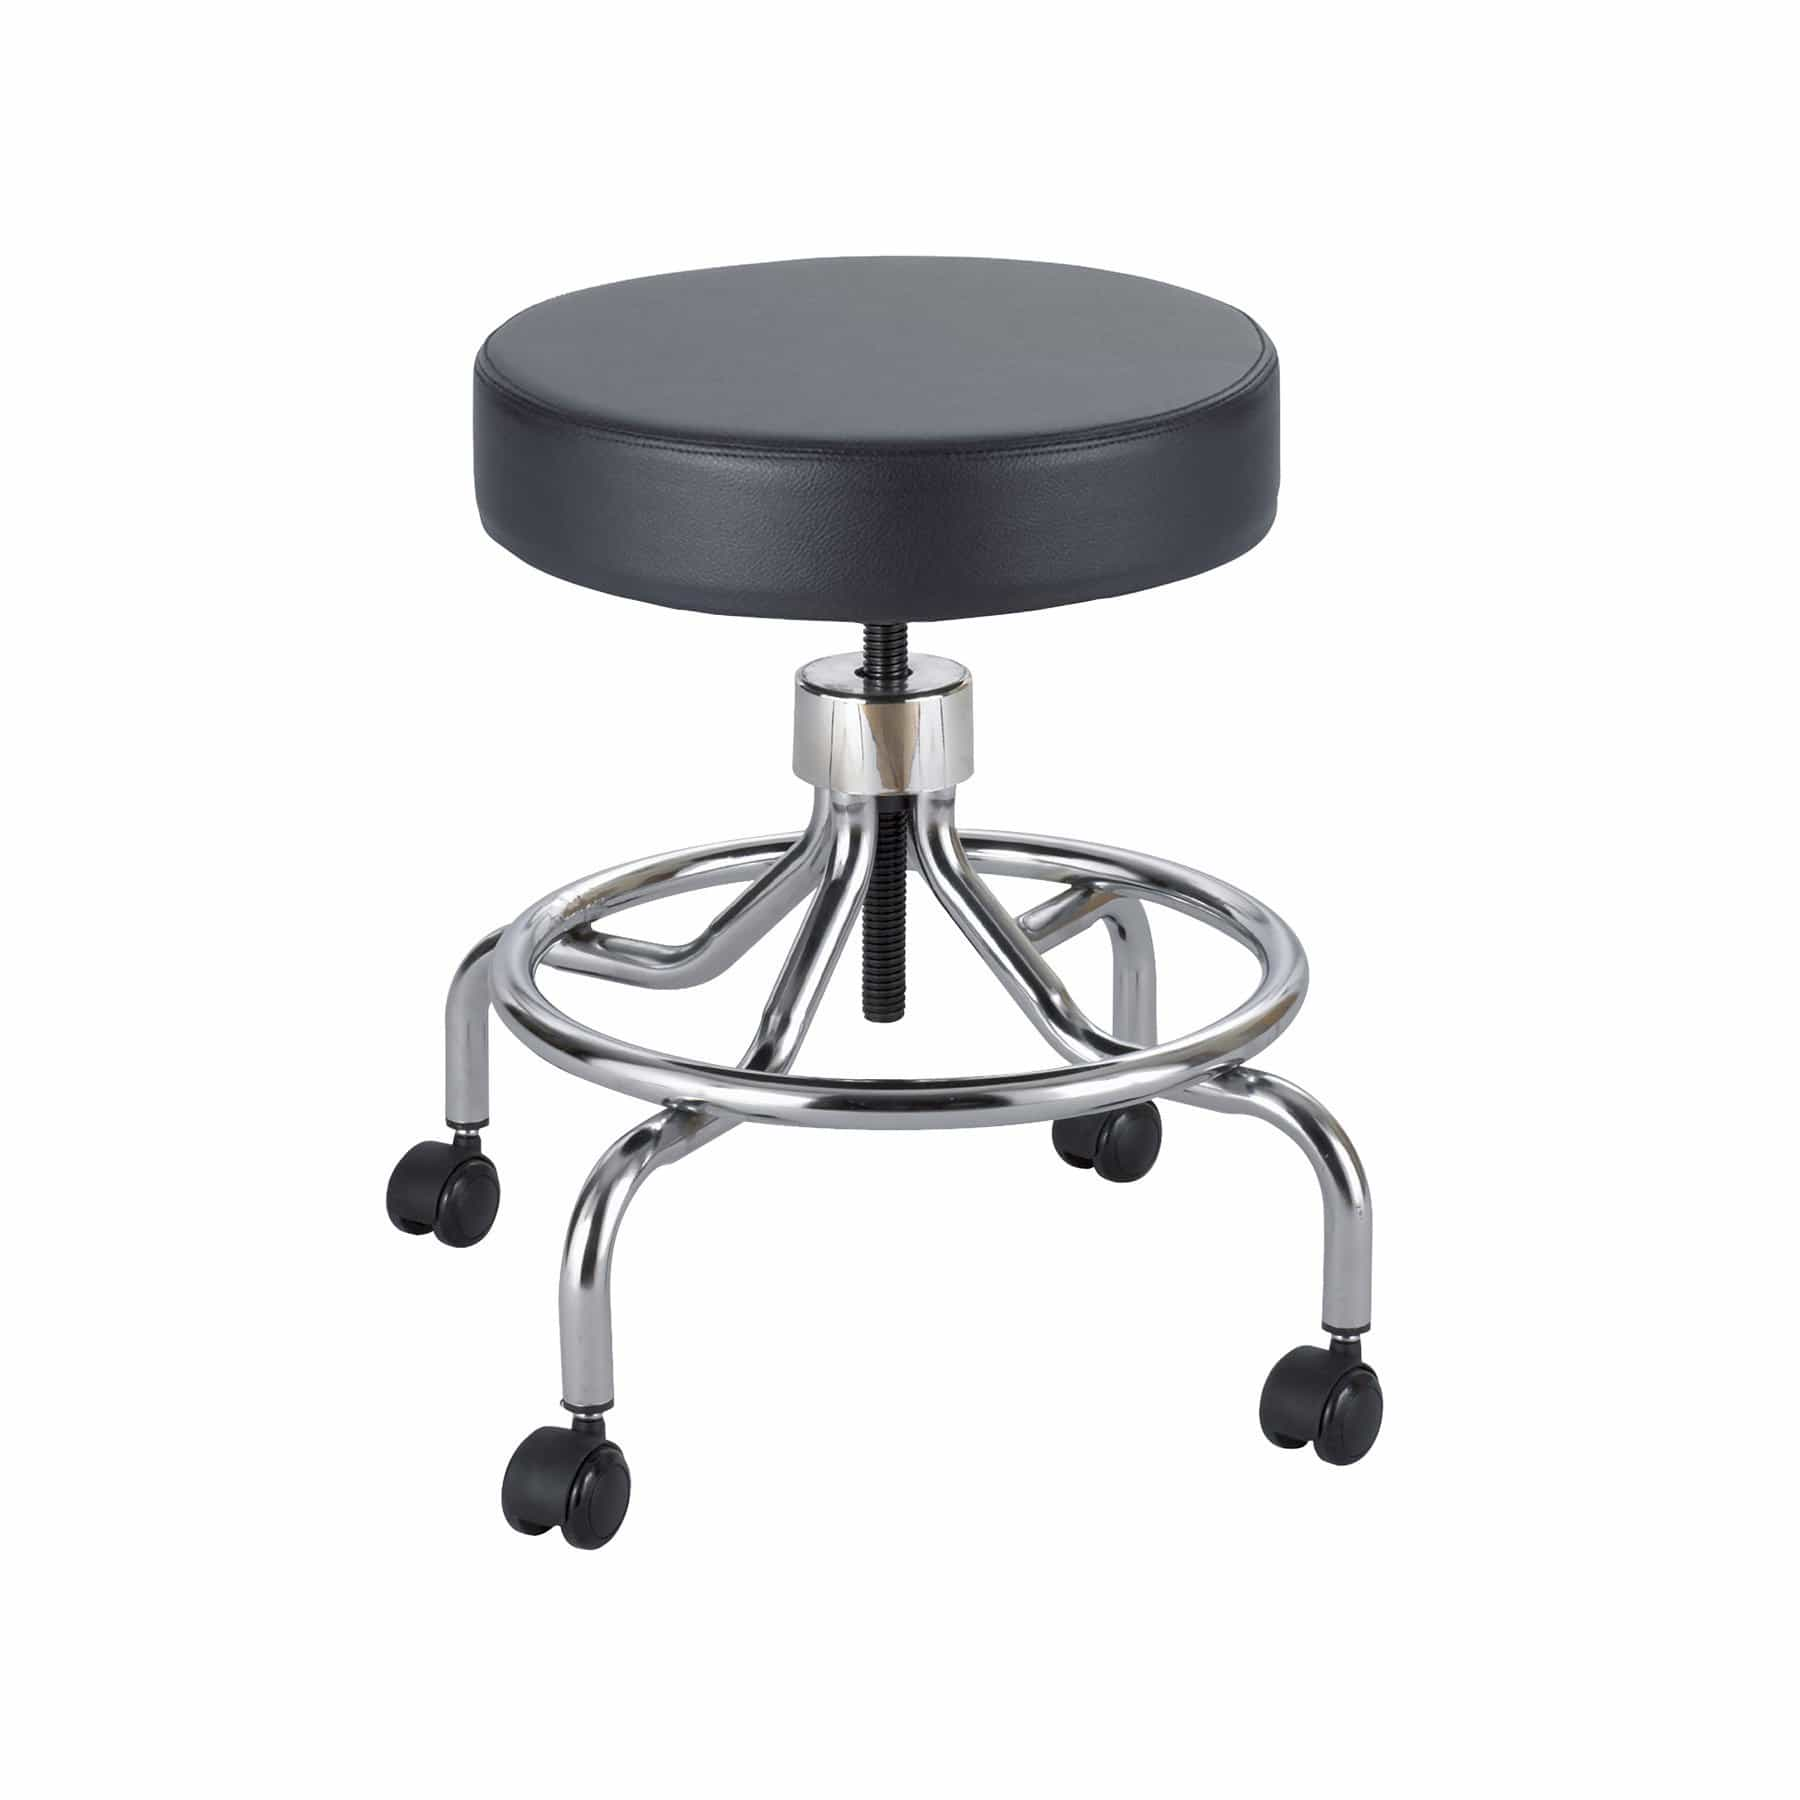 bedinhome - 3432BL Hospital Use Comfortable 5-inch Height Range Adjustment Swivel Chrome Plated Steel Base Black Rolling Lab Stool - Safco - Rolling Lab Stool